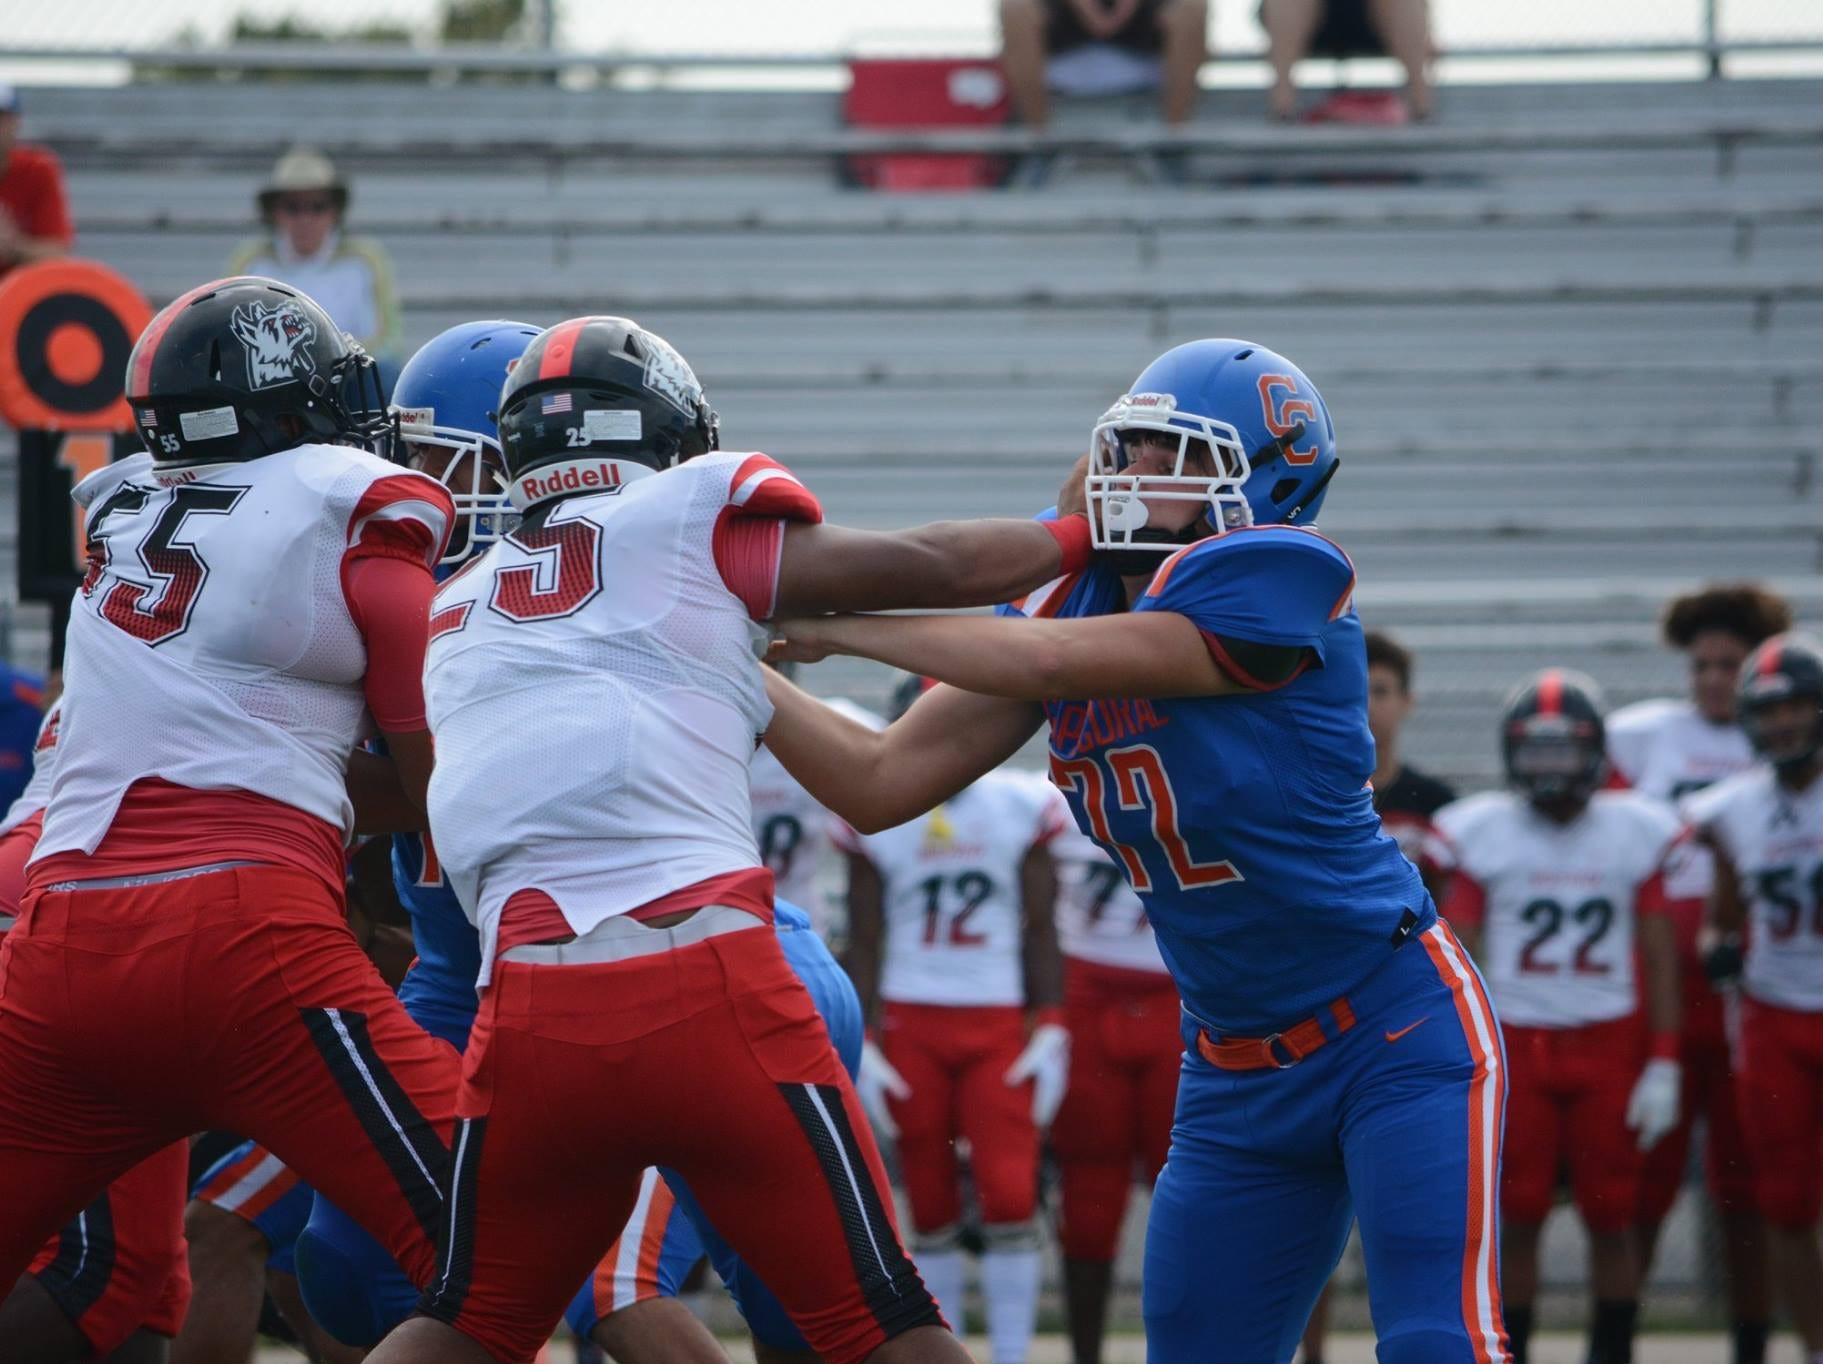 Cape Coral beat South Fort Myers 26-25 in a game delayed until Saturday morning due to inclement weather.